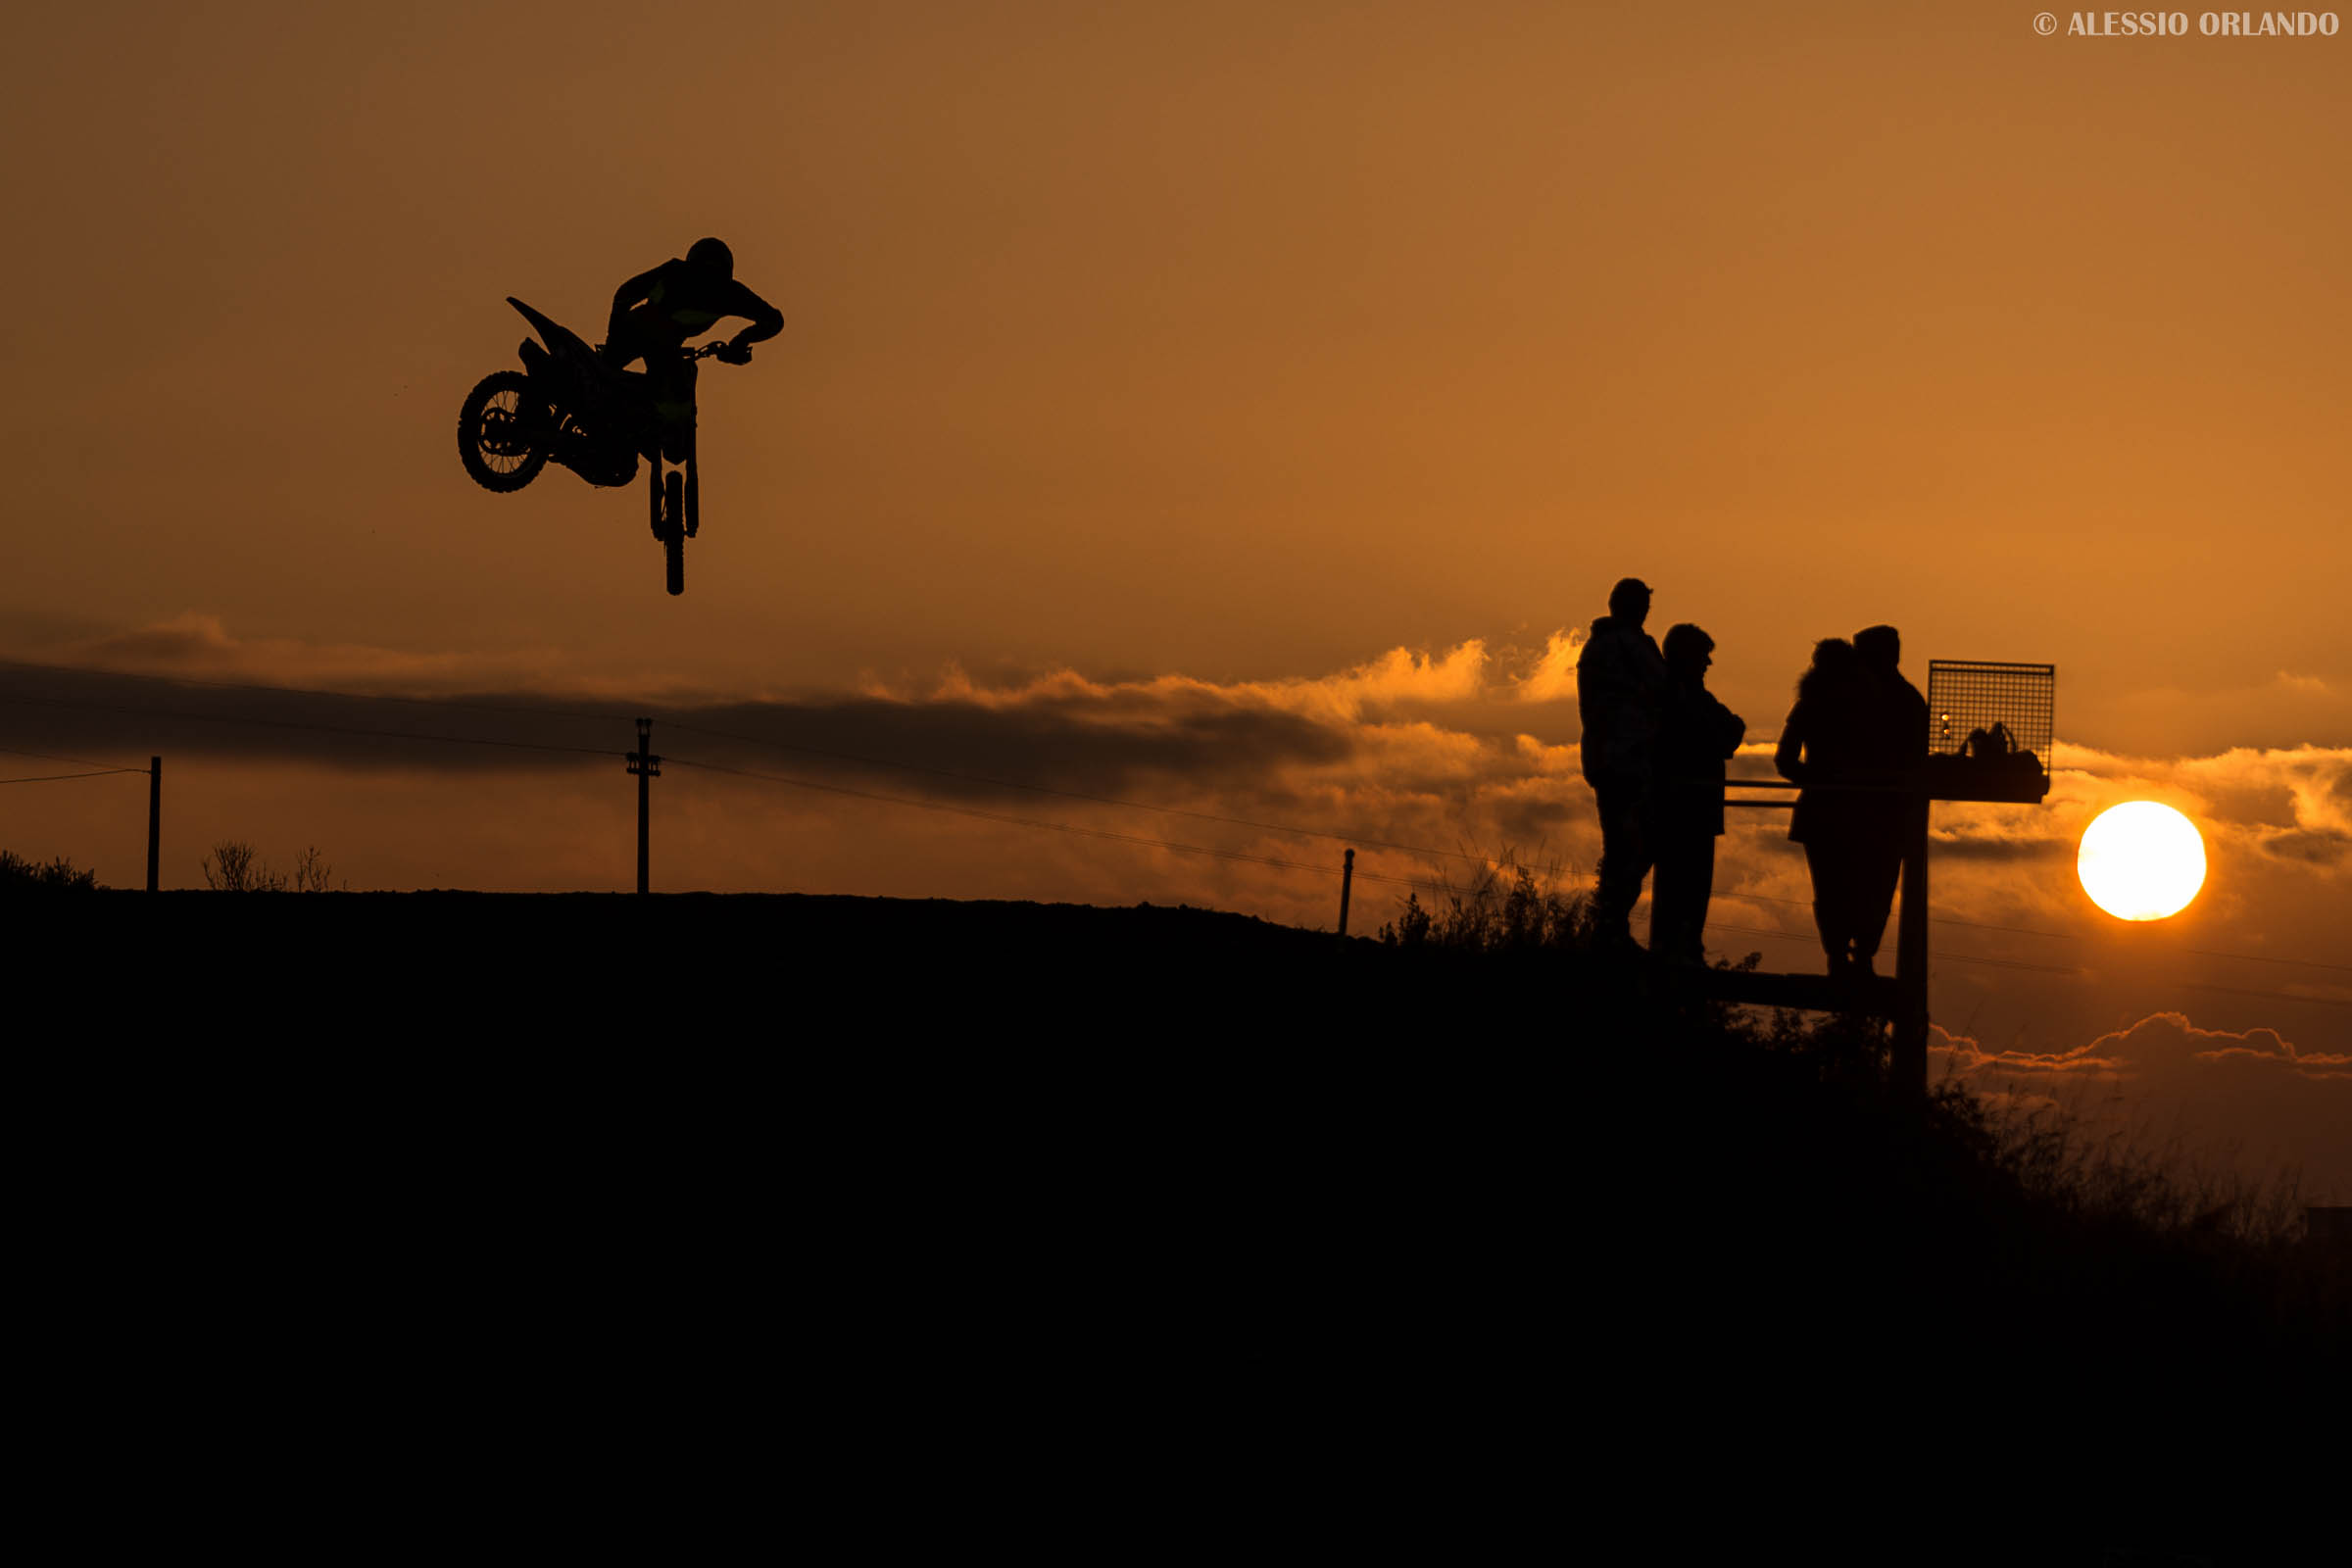 Jumping into the sunset...